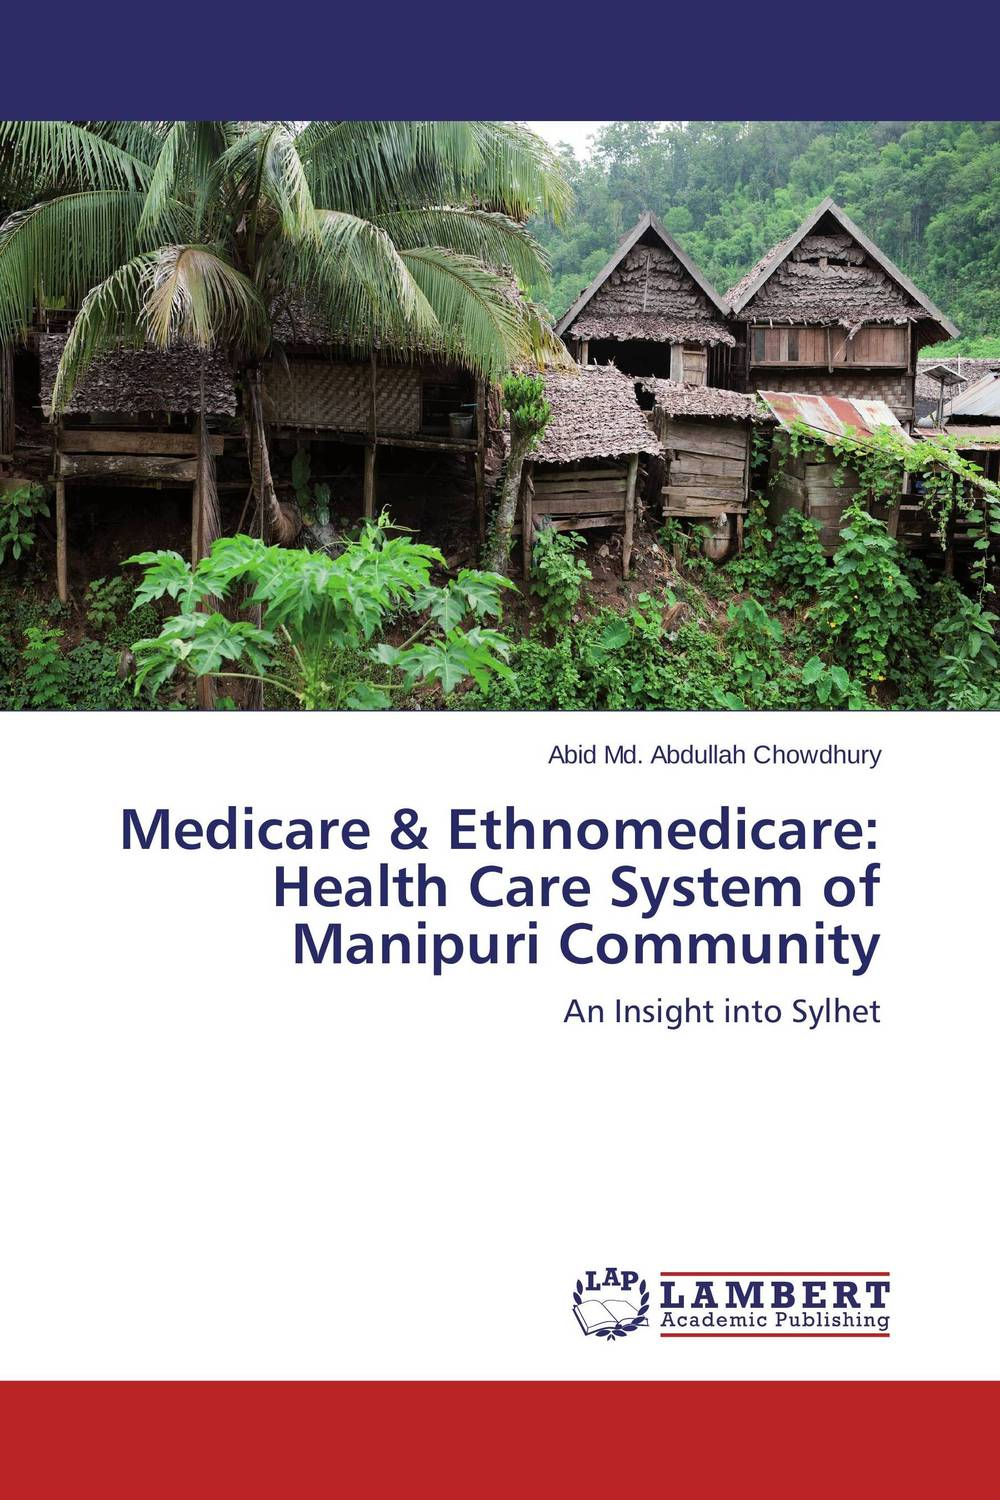 Medicare & Ethnomedicare: Health Care System of  Manipuri Community